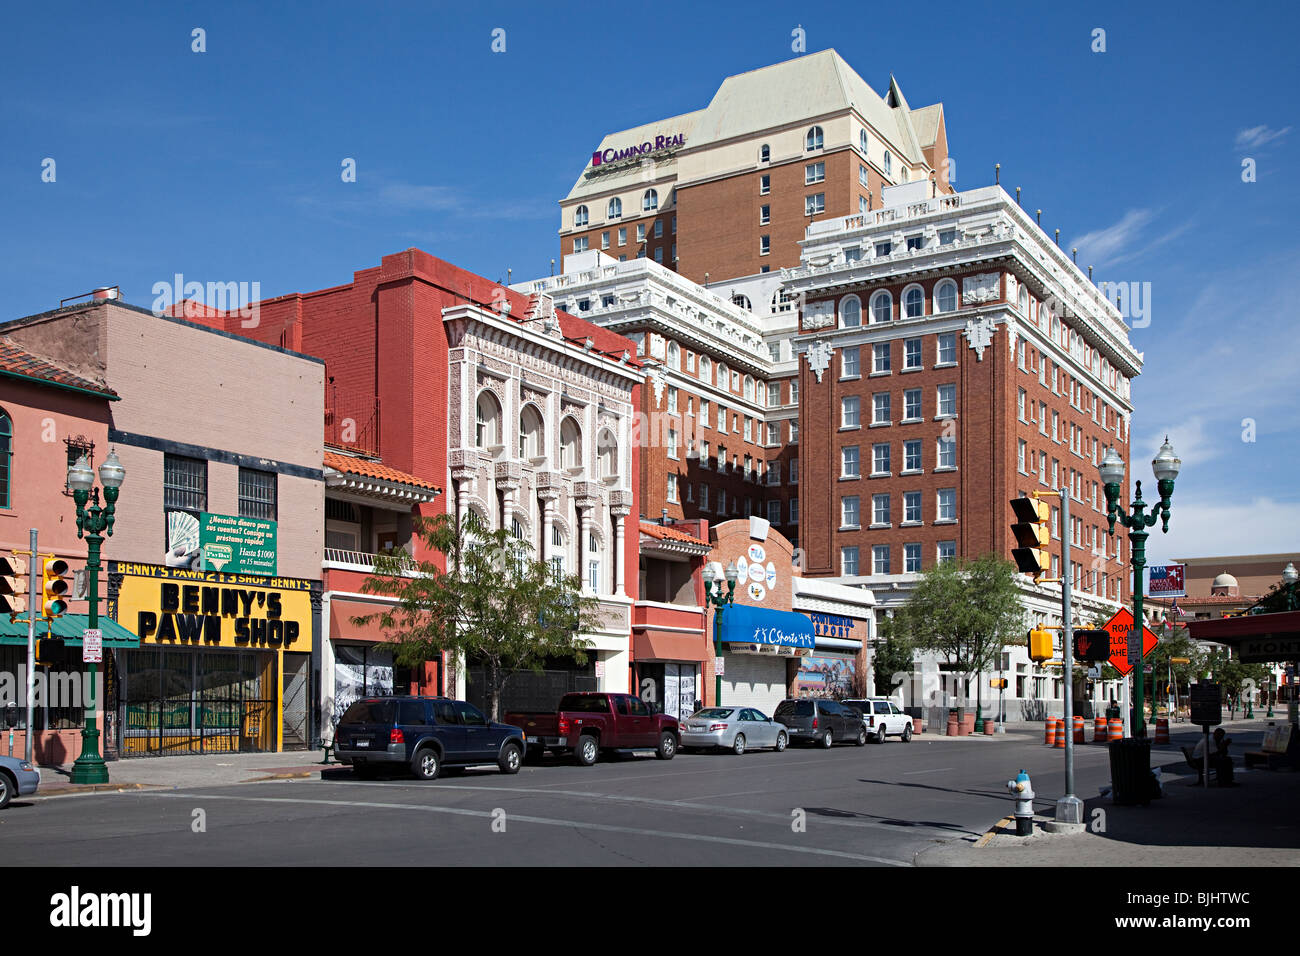 Street with pawn shop and hotel El Paso Texas USA - Stock Image